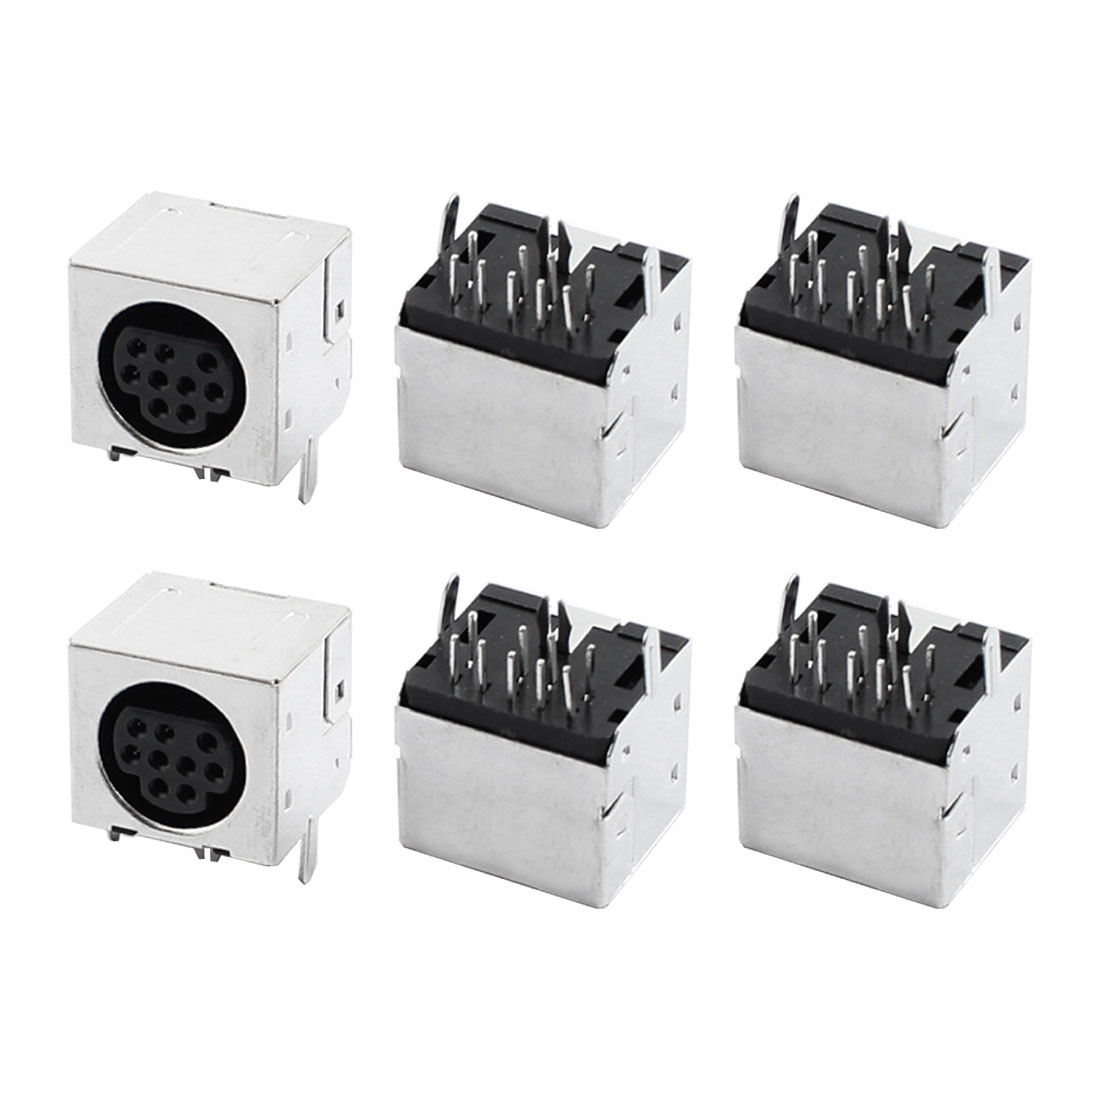 6 Pcs Metal Shell DIN 9 Pin Female Connector S-video Adapter Sockets